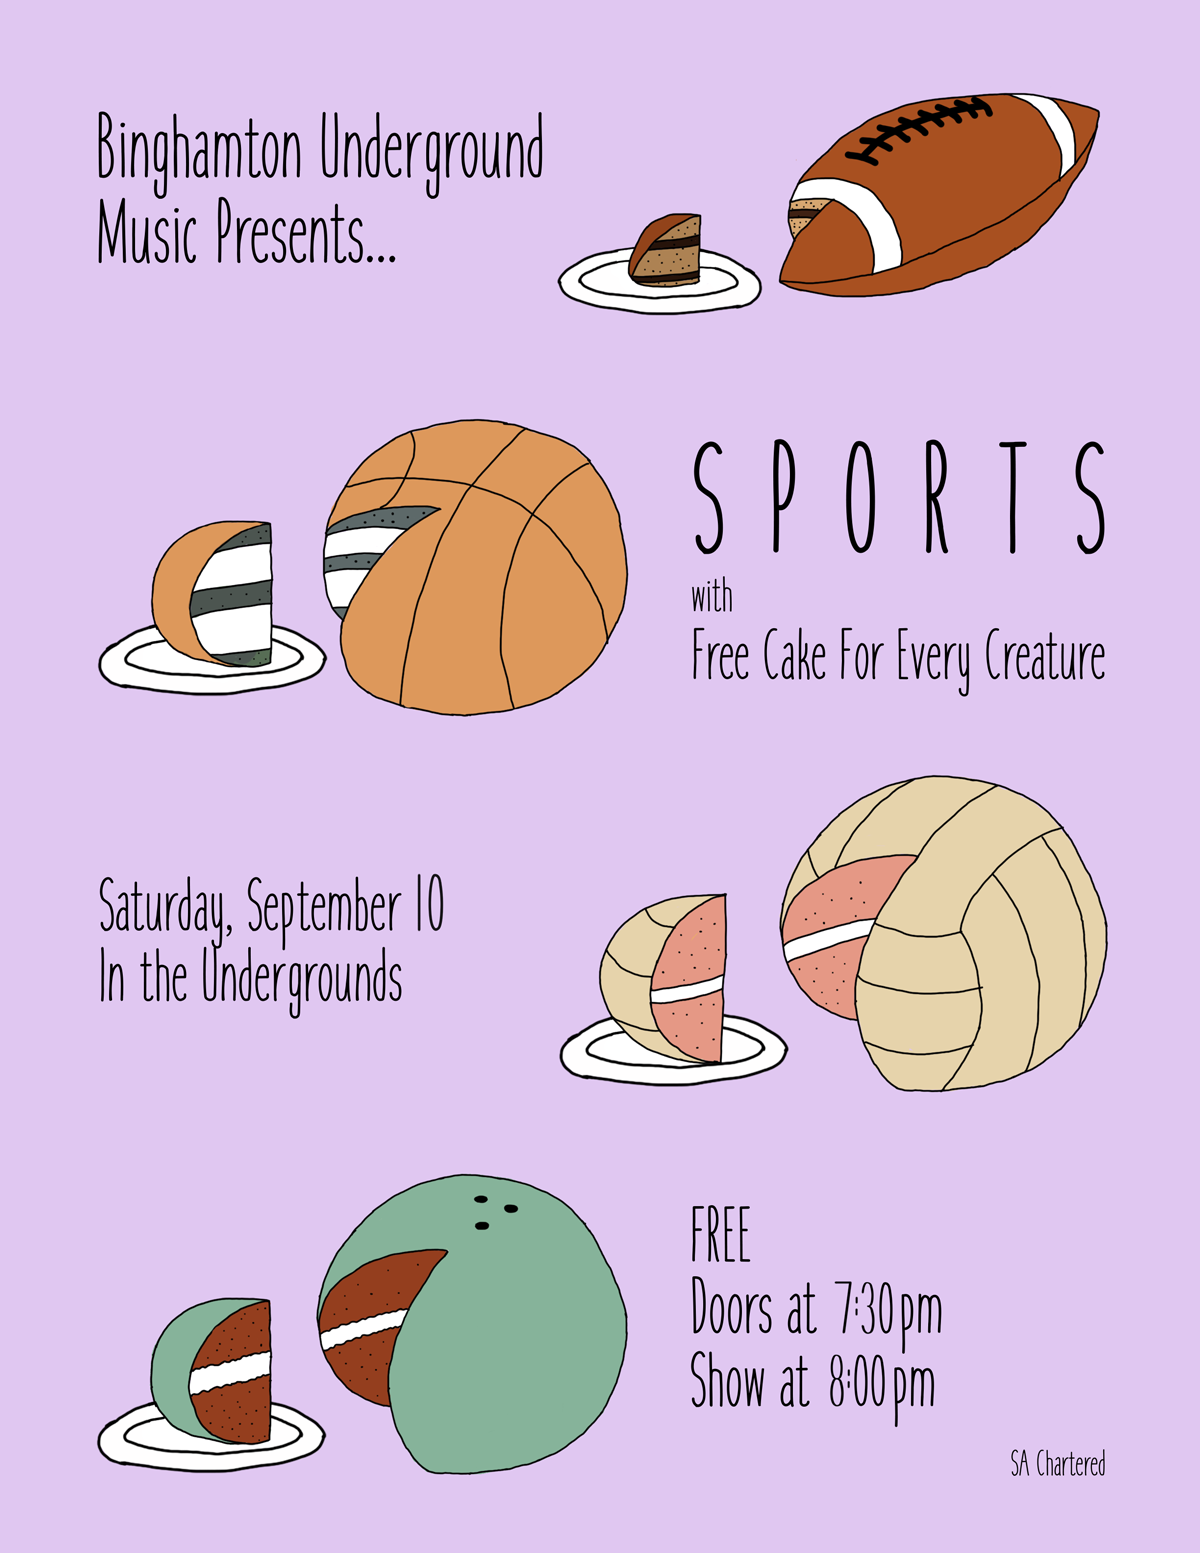 Funny concert poster for SPORTS and Free Cakes for Every Creature showing sports as cakes